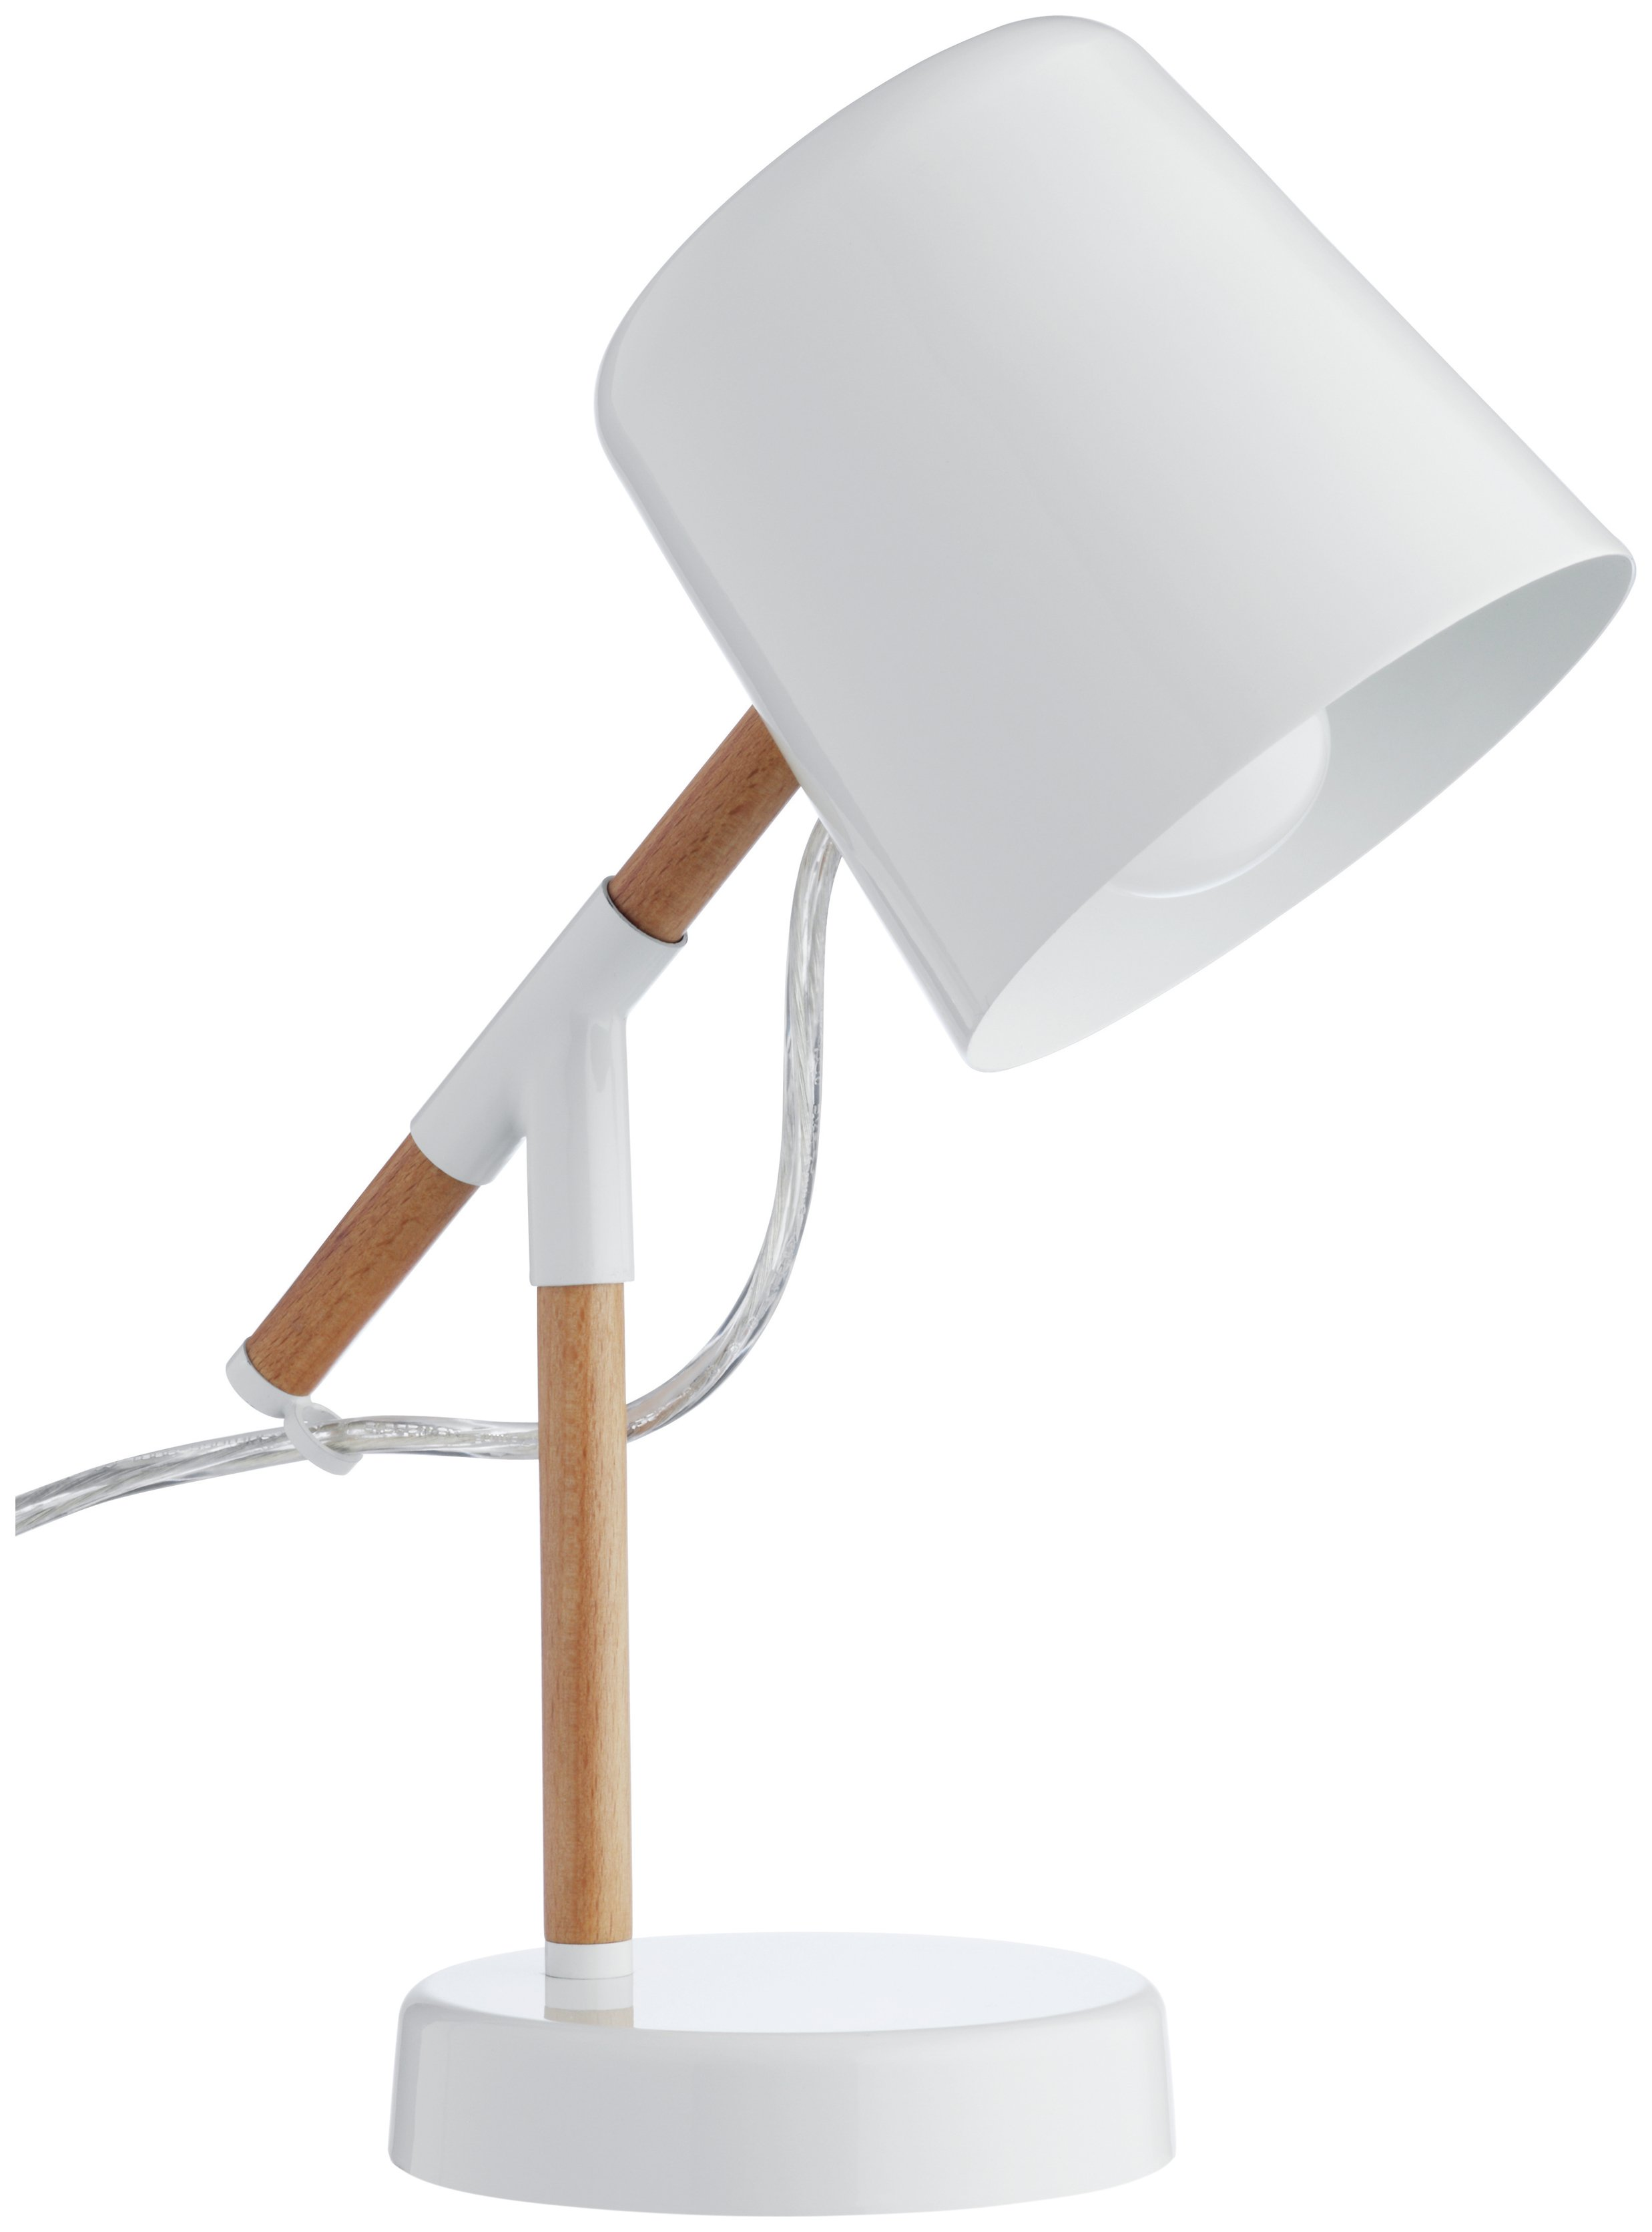 Habitat Peeta Wood and Metal Desk Lamp - White